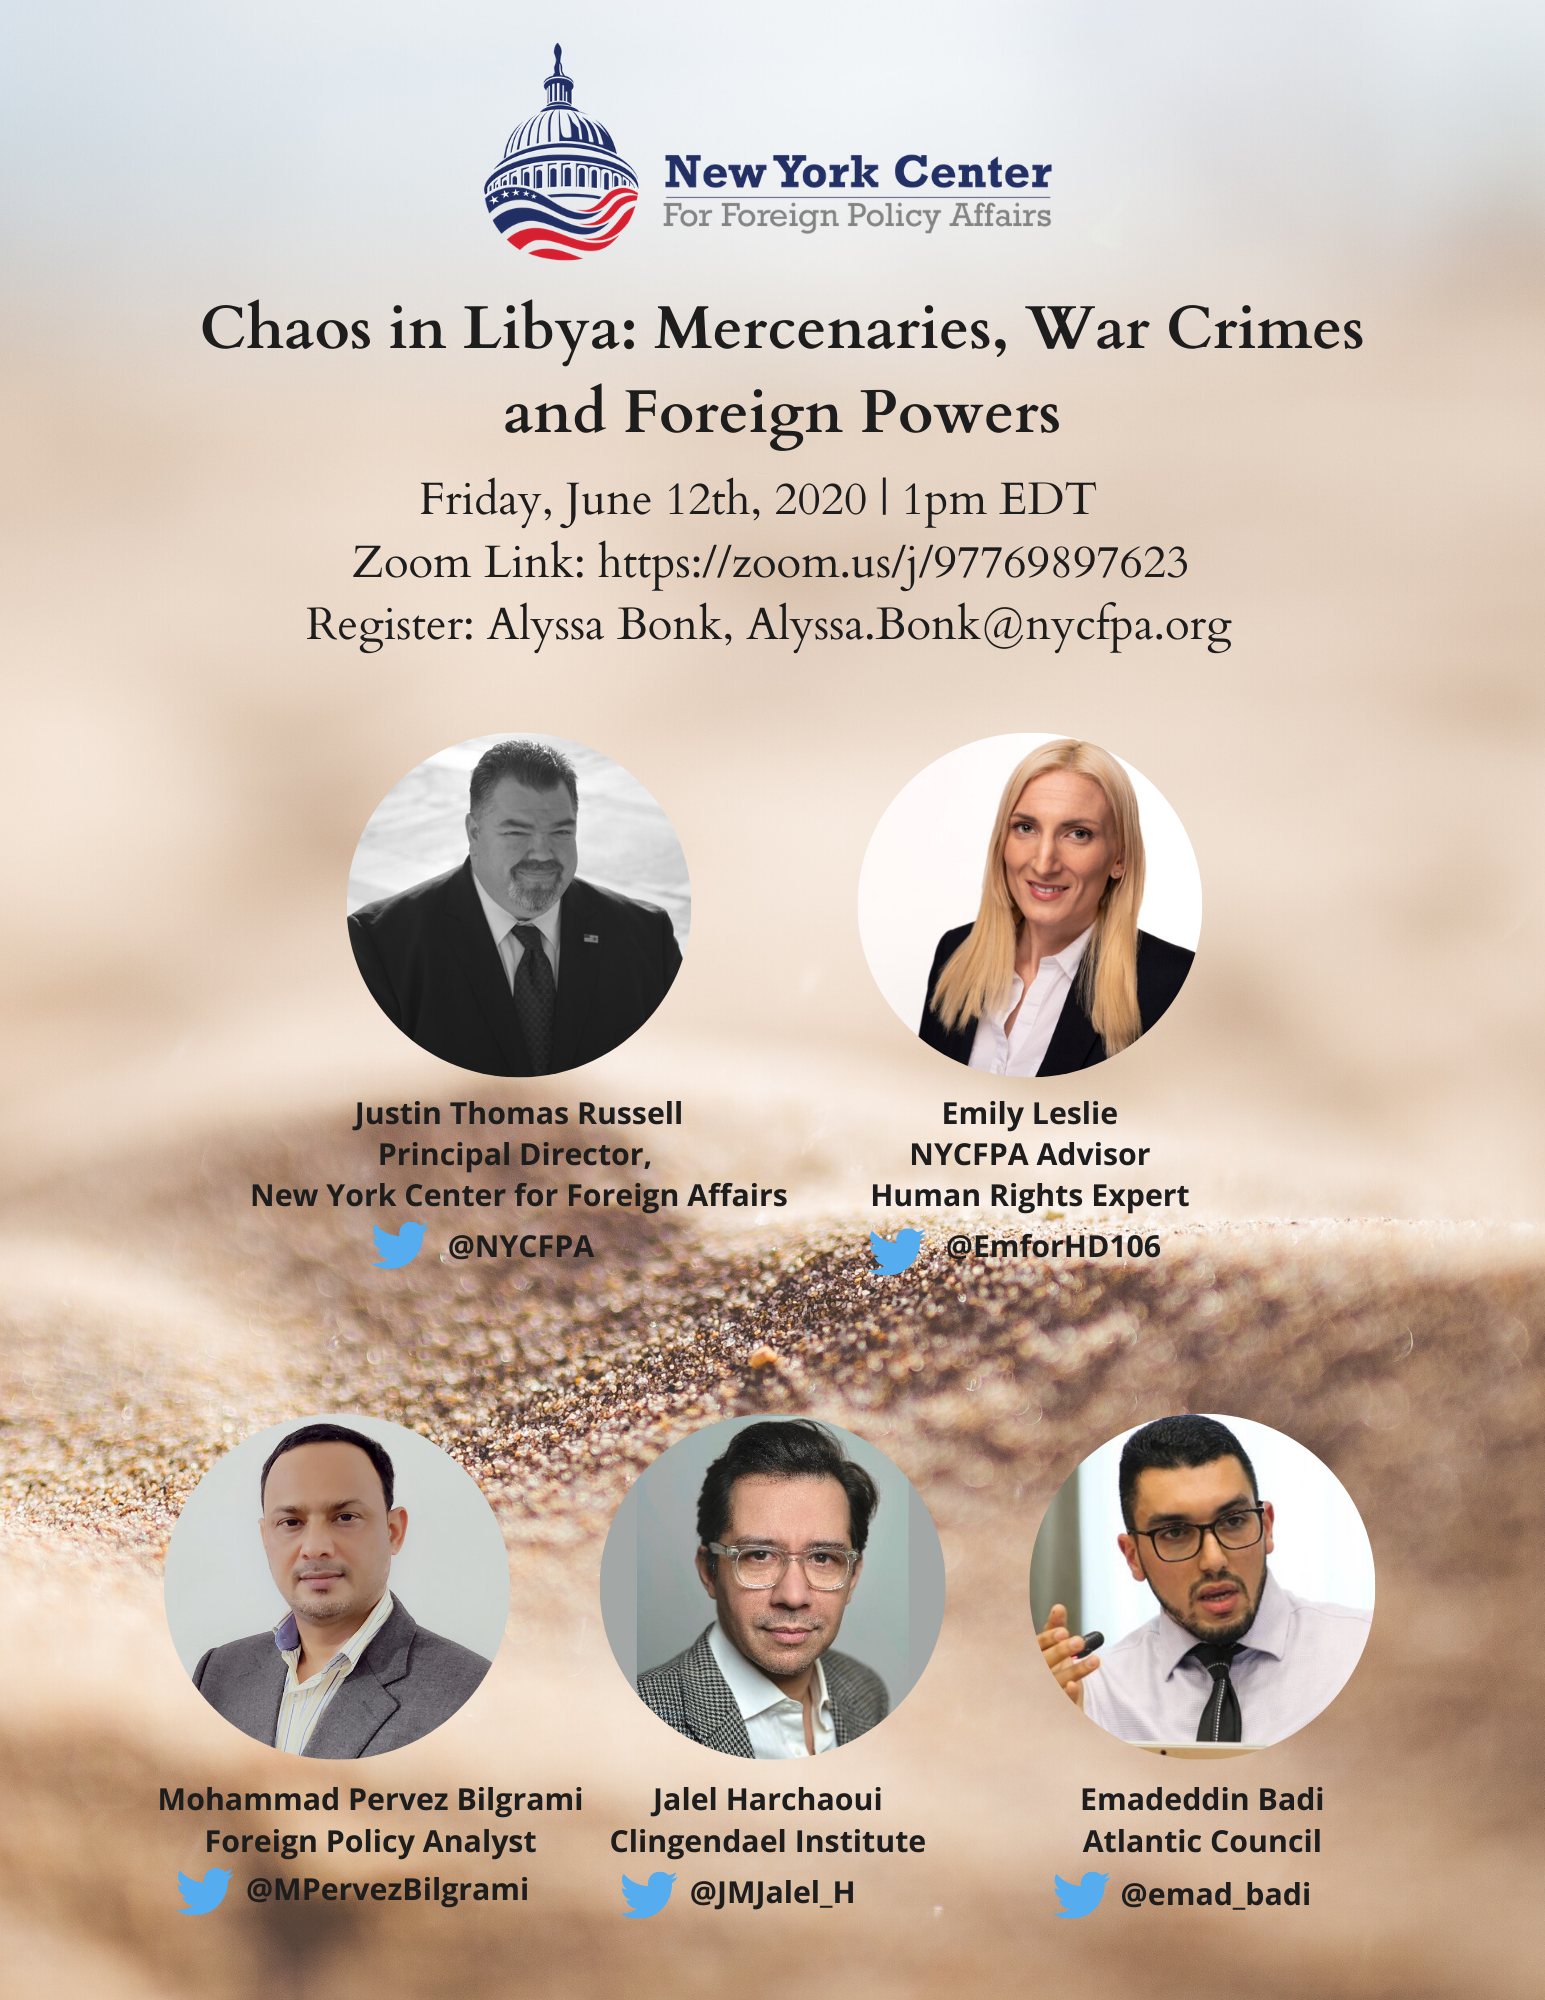 Chaos in Libya: Mercenaries, War Crimes and Foreign Powers